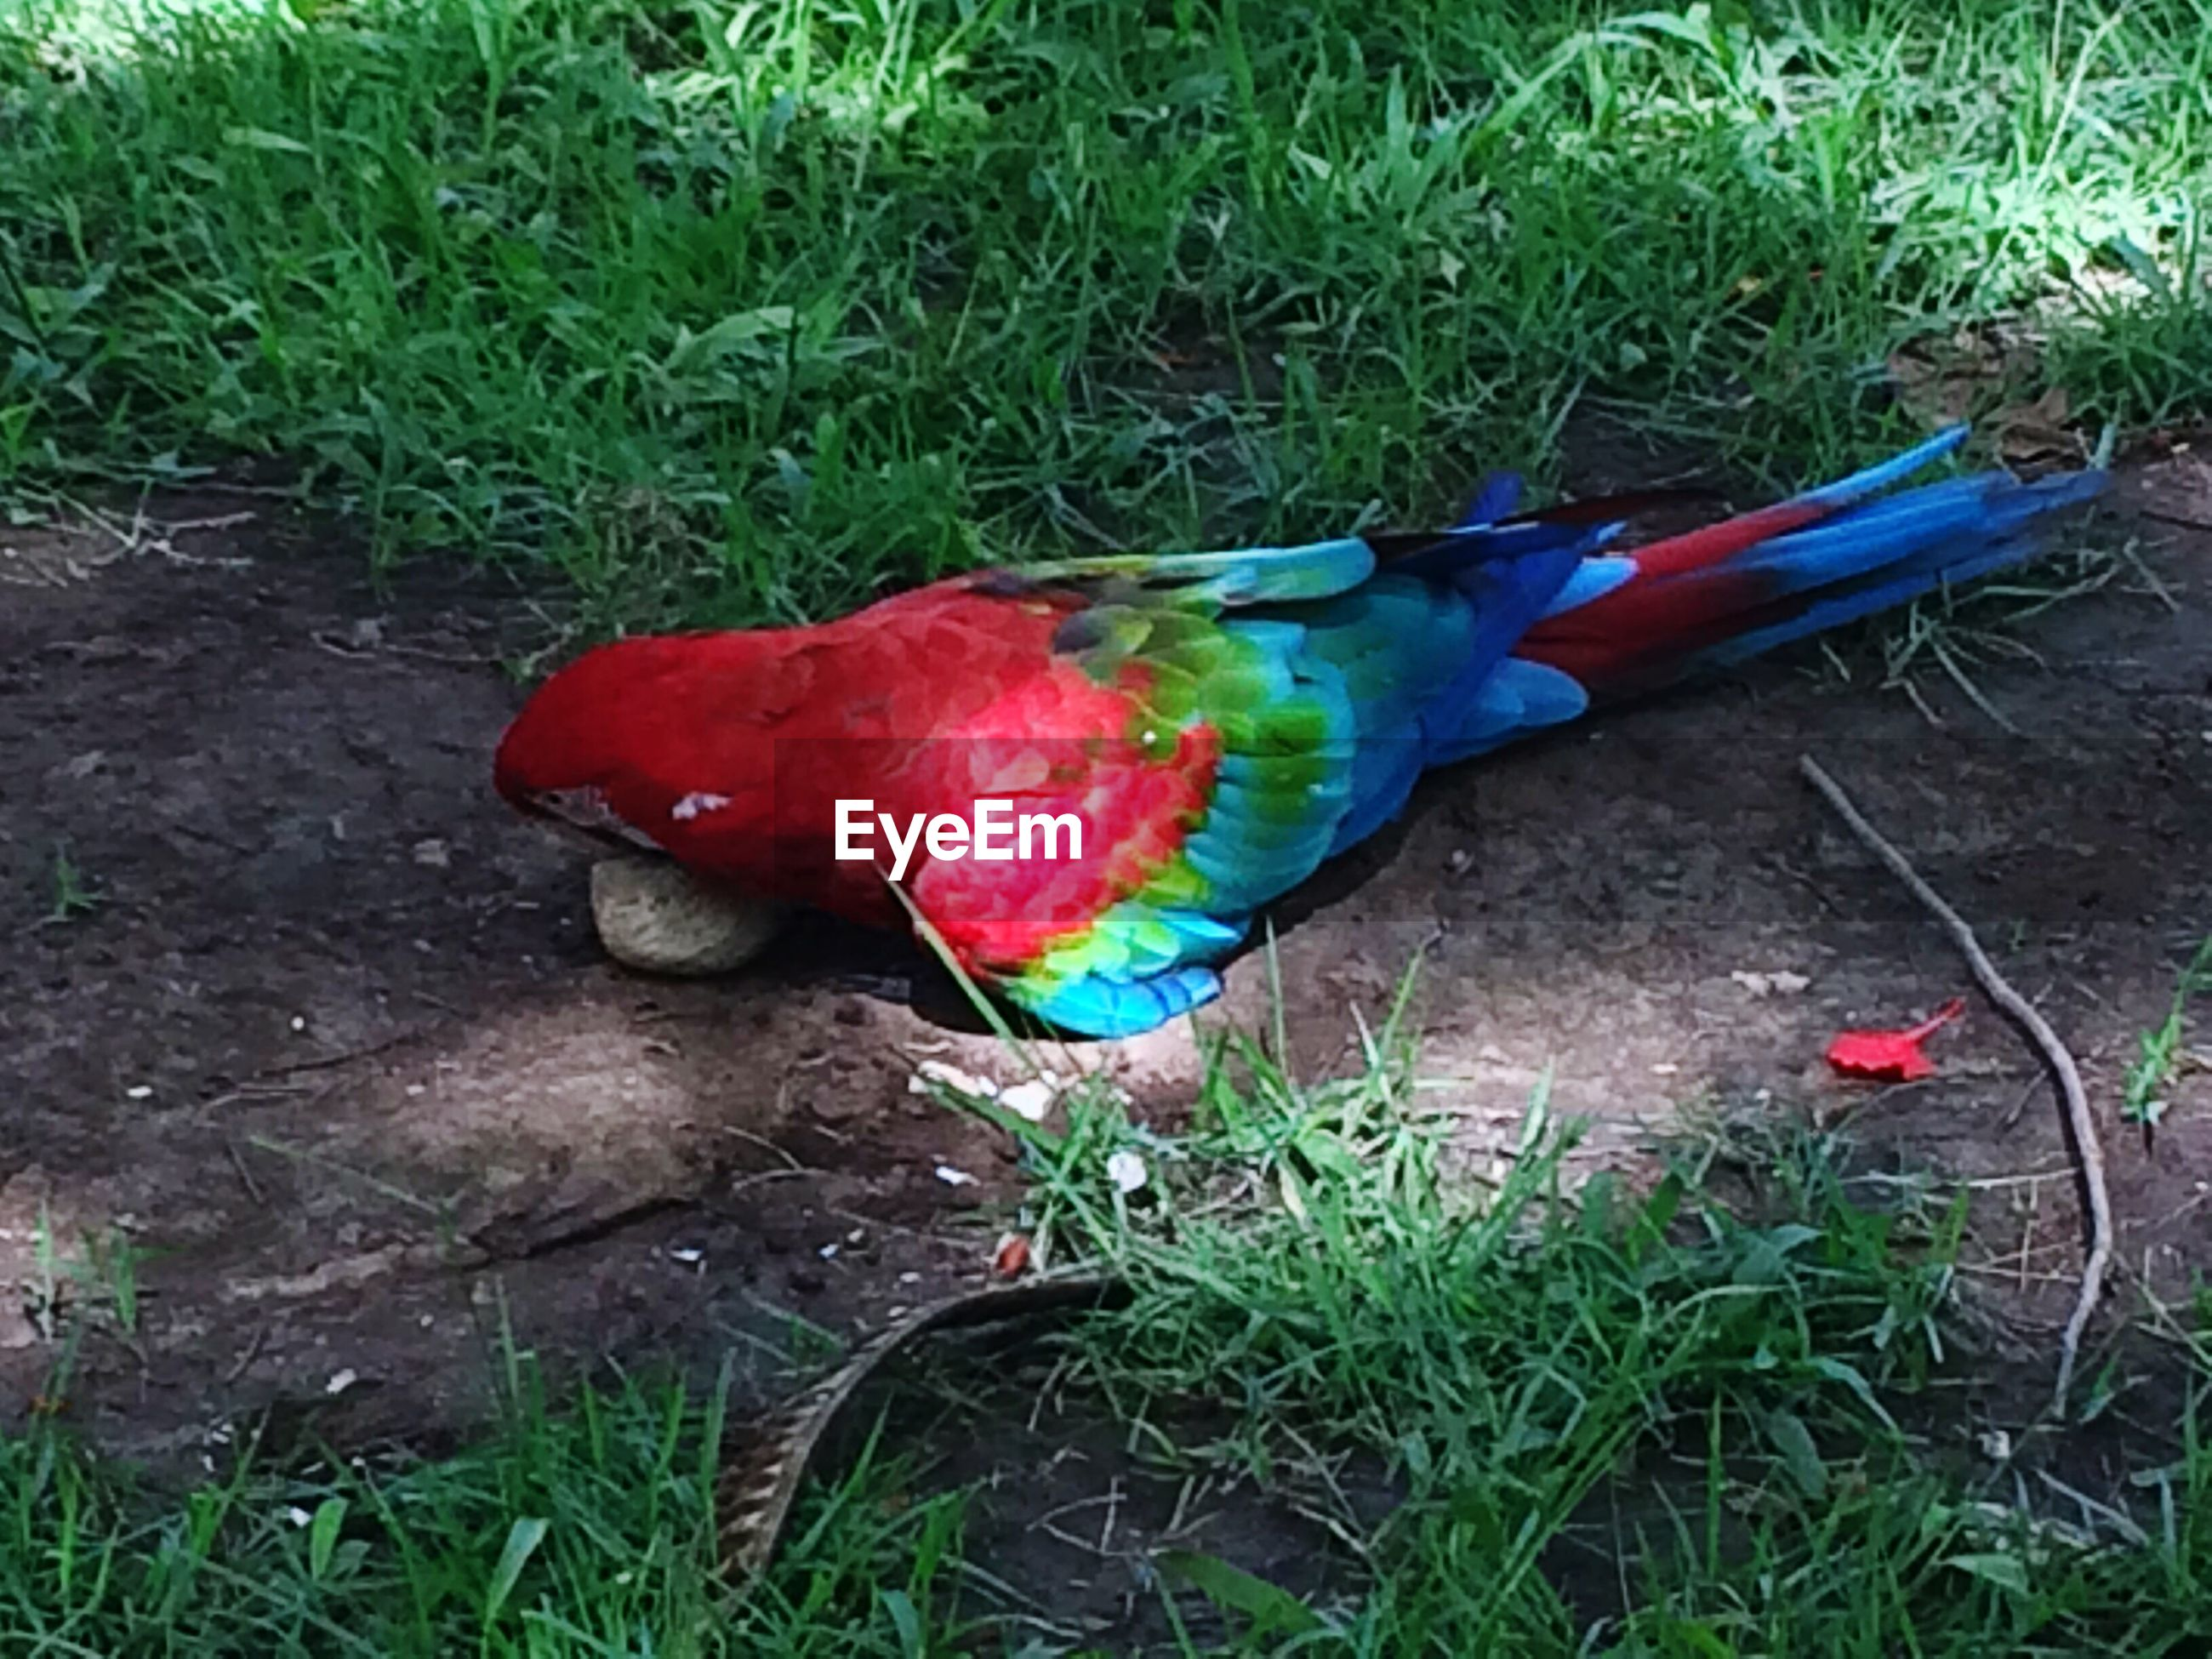 HIGH ANGLE VIEW OF BIRD ON GRASS